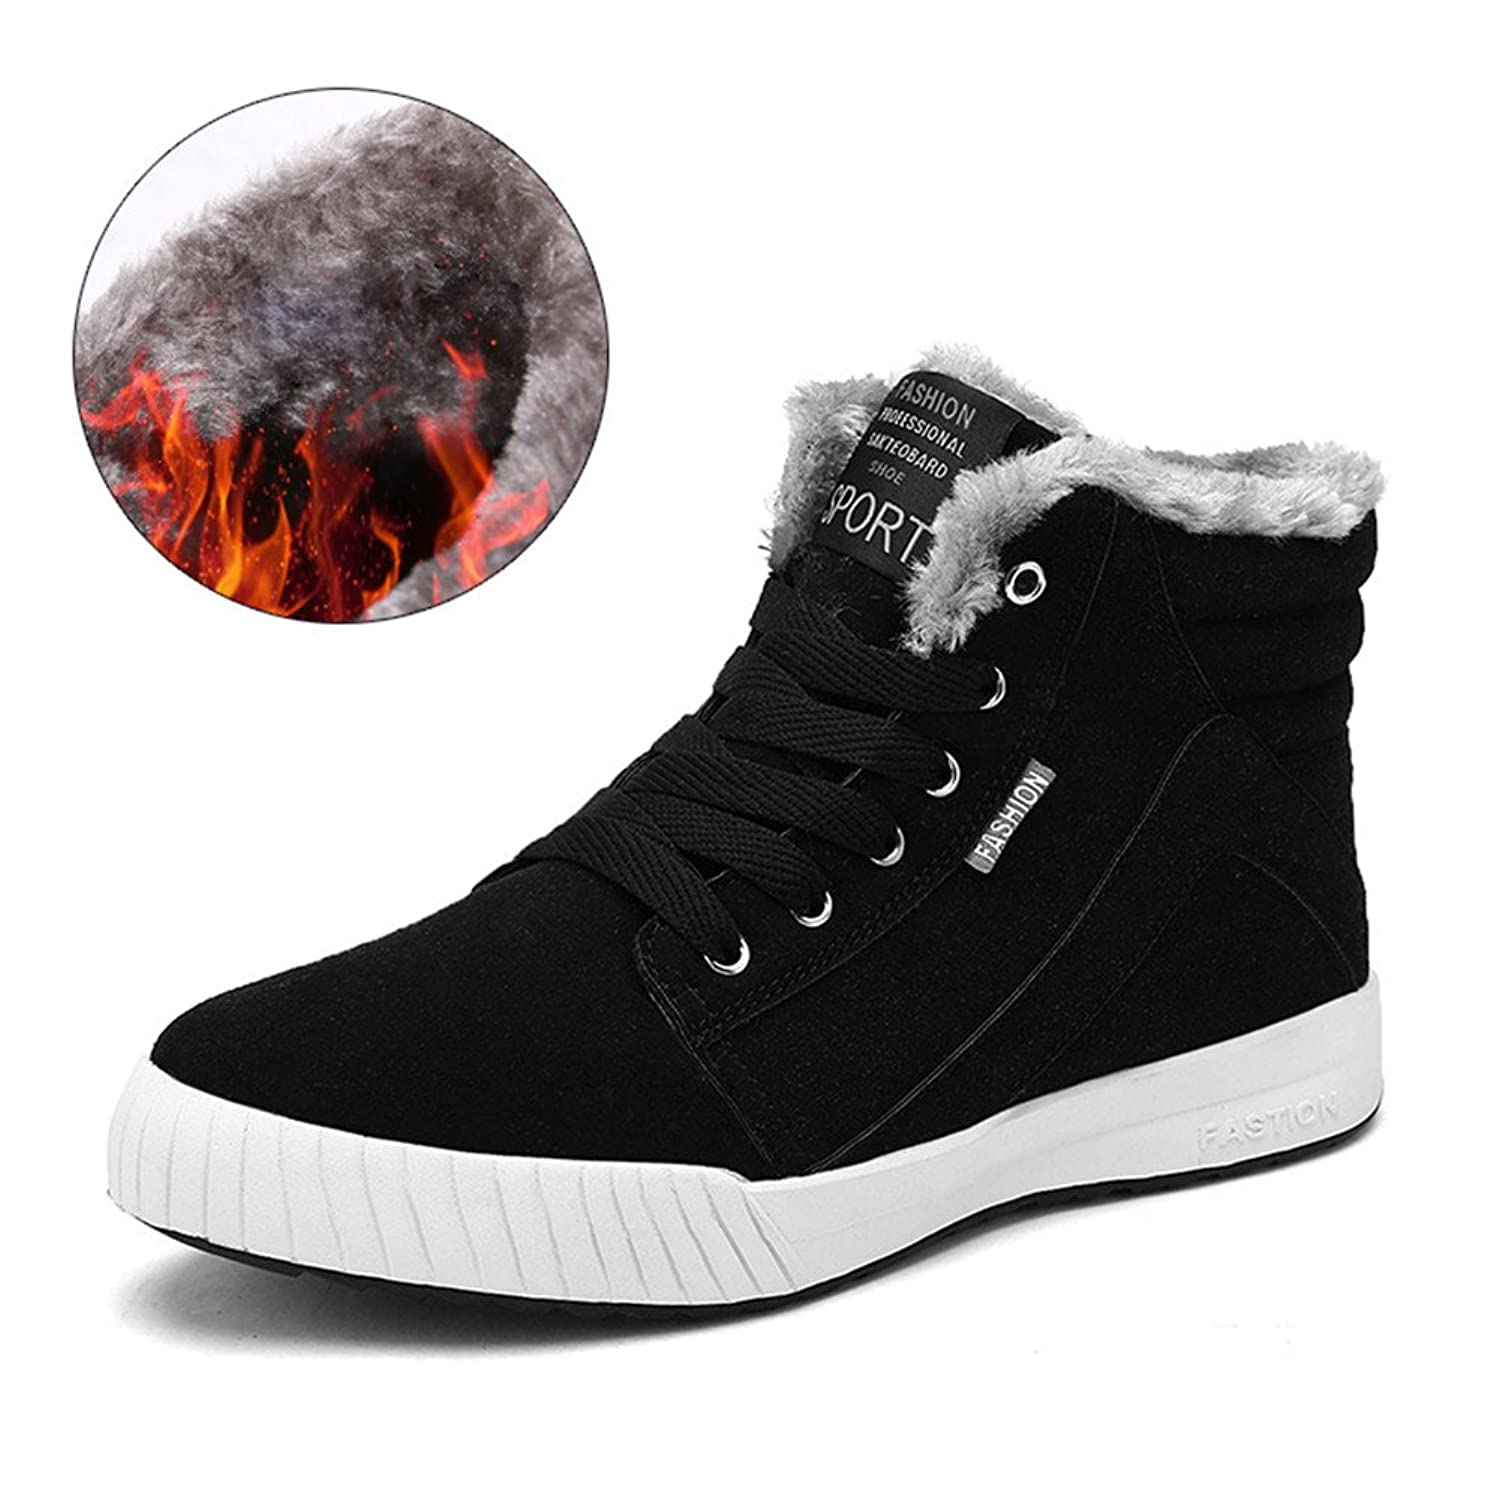 L-RUN Winter Boots for Men Lace-up Casual Warm Ankle Snow Boots with Fur